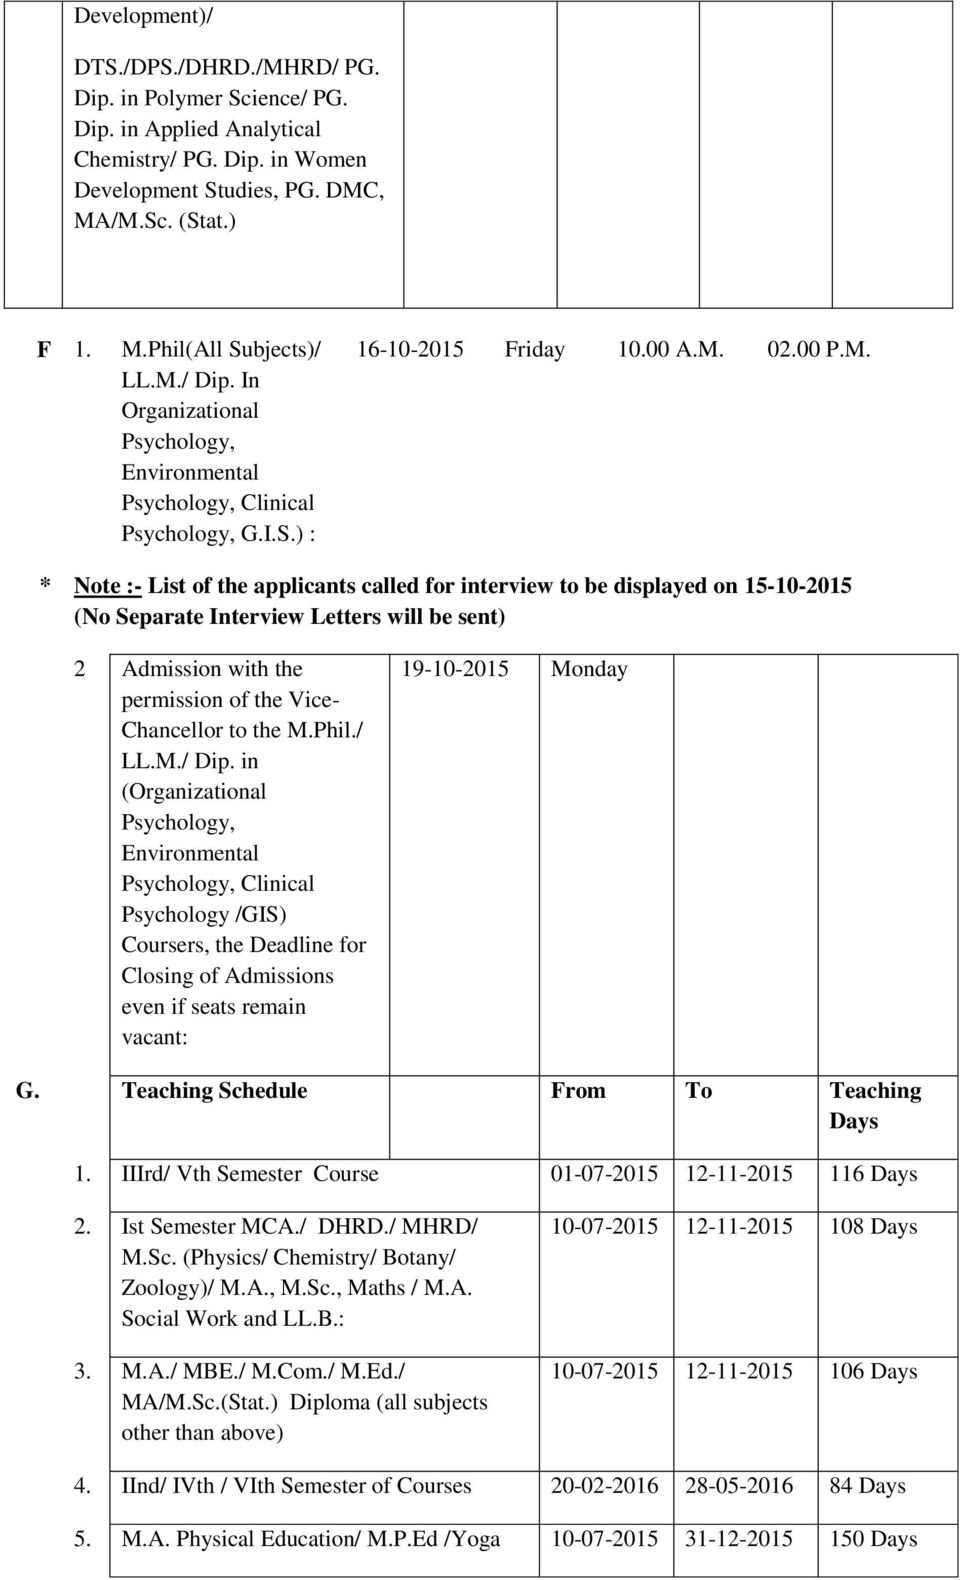 Phil./ LL.M./ Dip. in (Organizational Clinical Psychology /GIS) Coursers, the Deadline for Closing of Admissions even if seats remain vacant: 19-10-2015 Monday G.